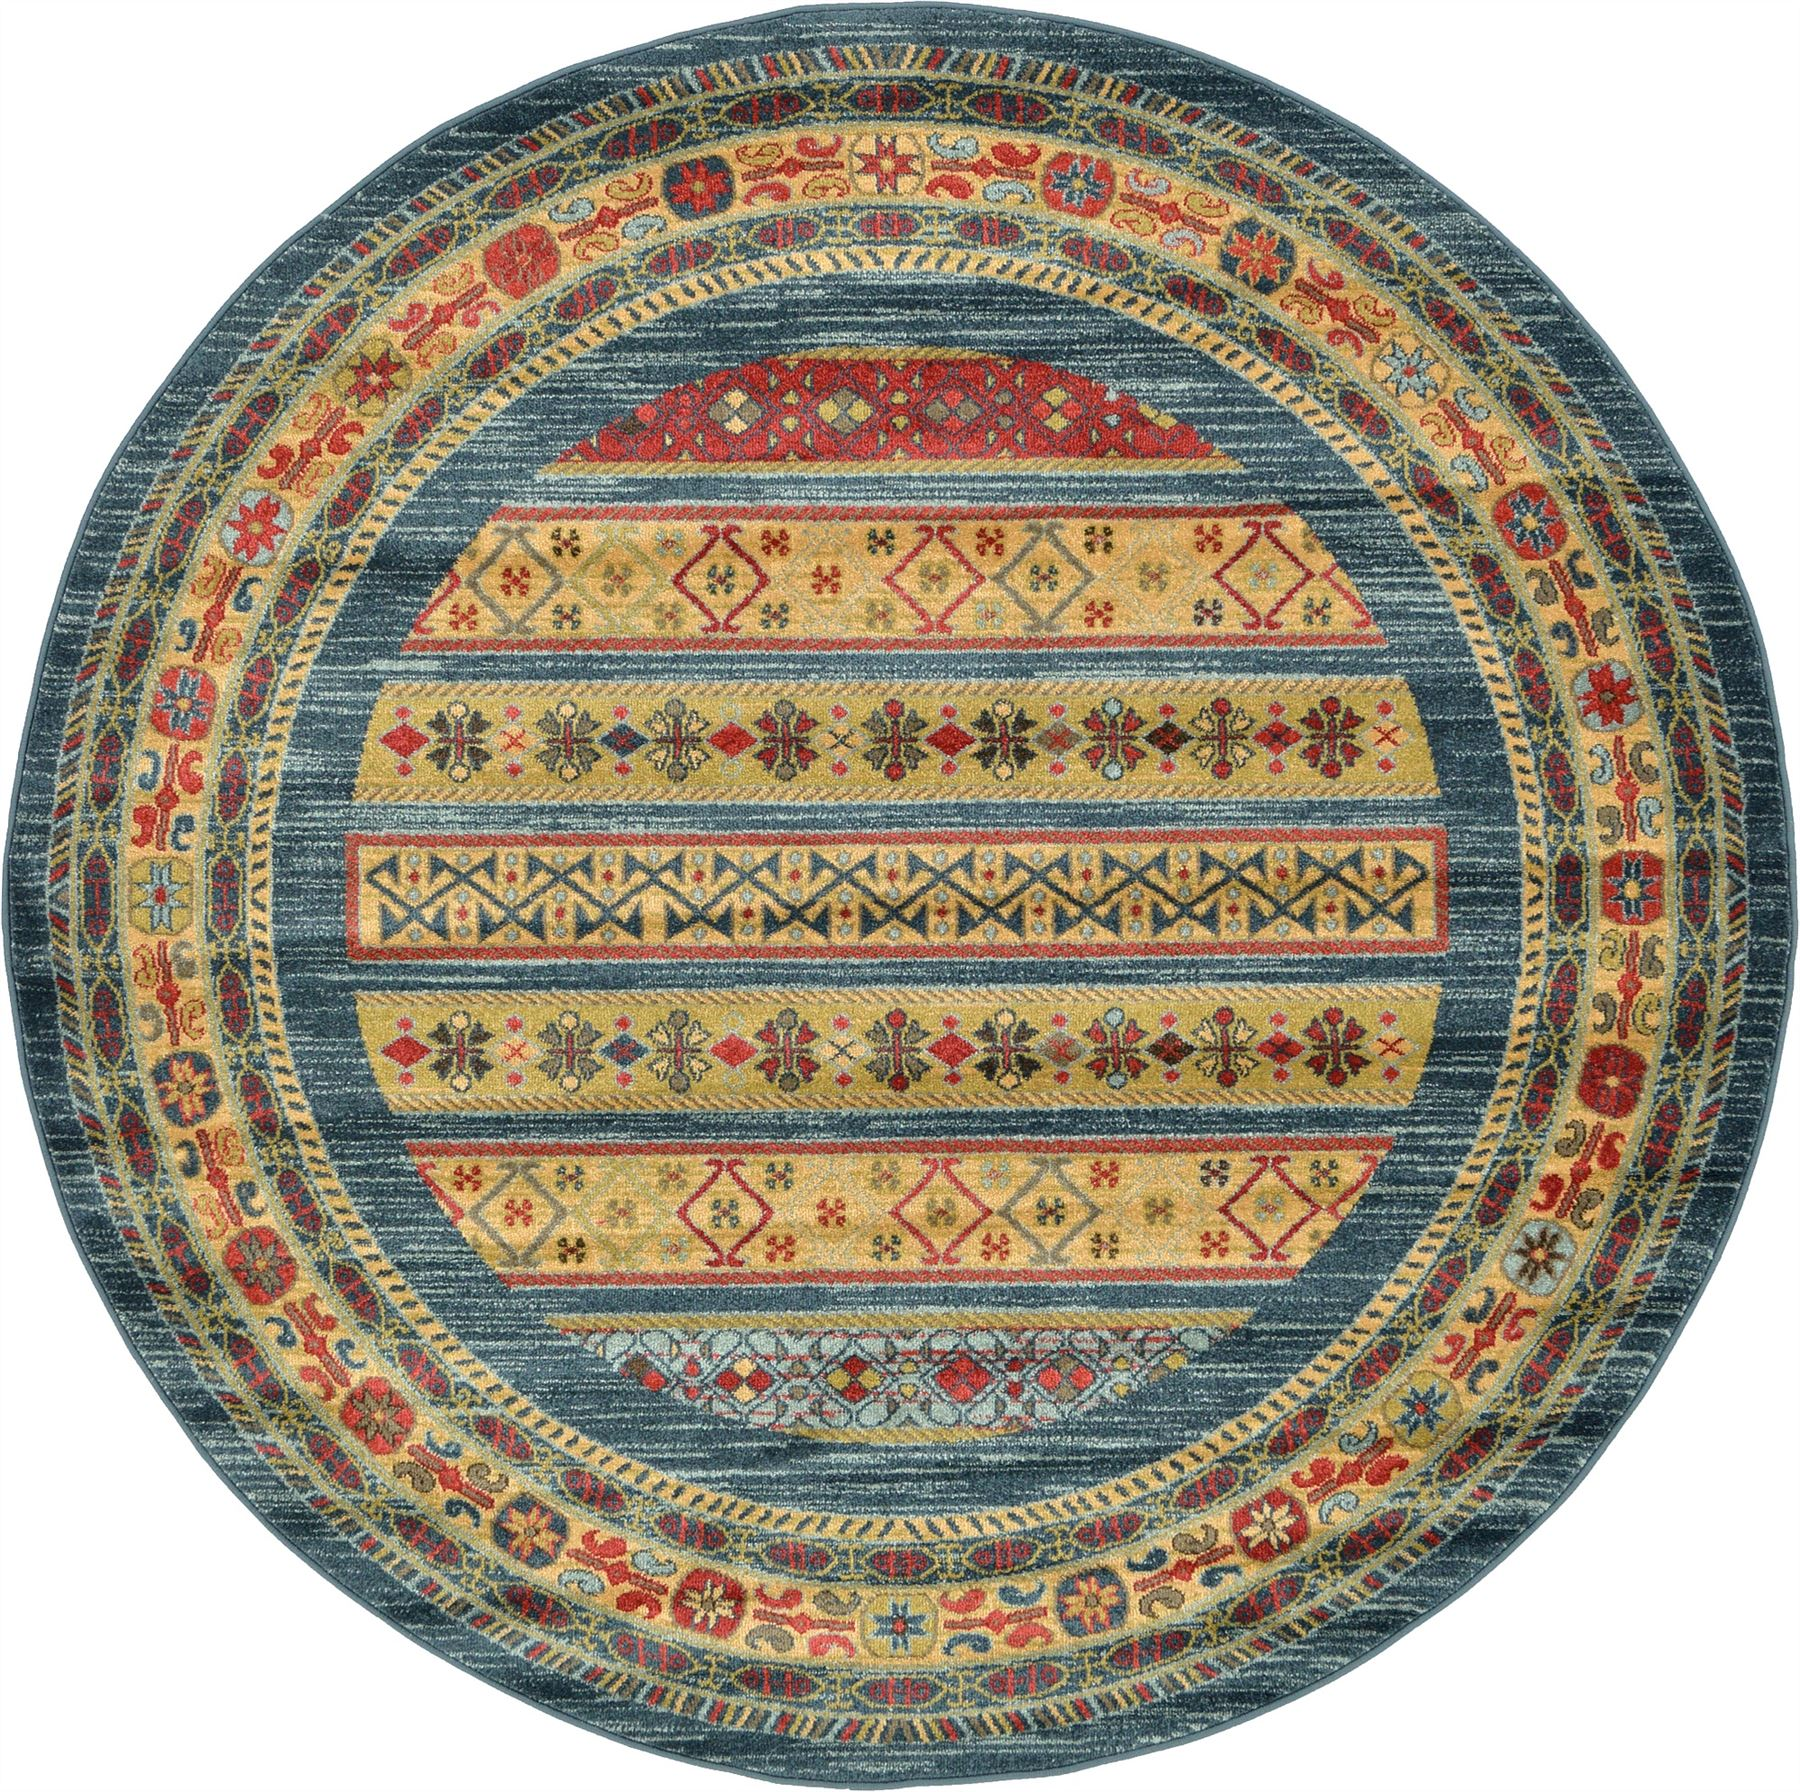 Rug Runners Contemporary: Oriental Modern Area Rug Soft Round Carpet Tribal